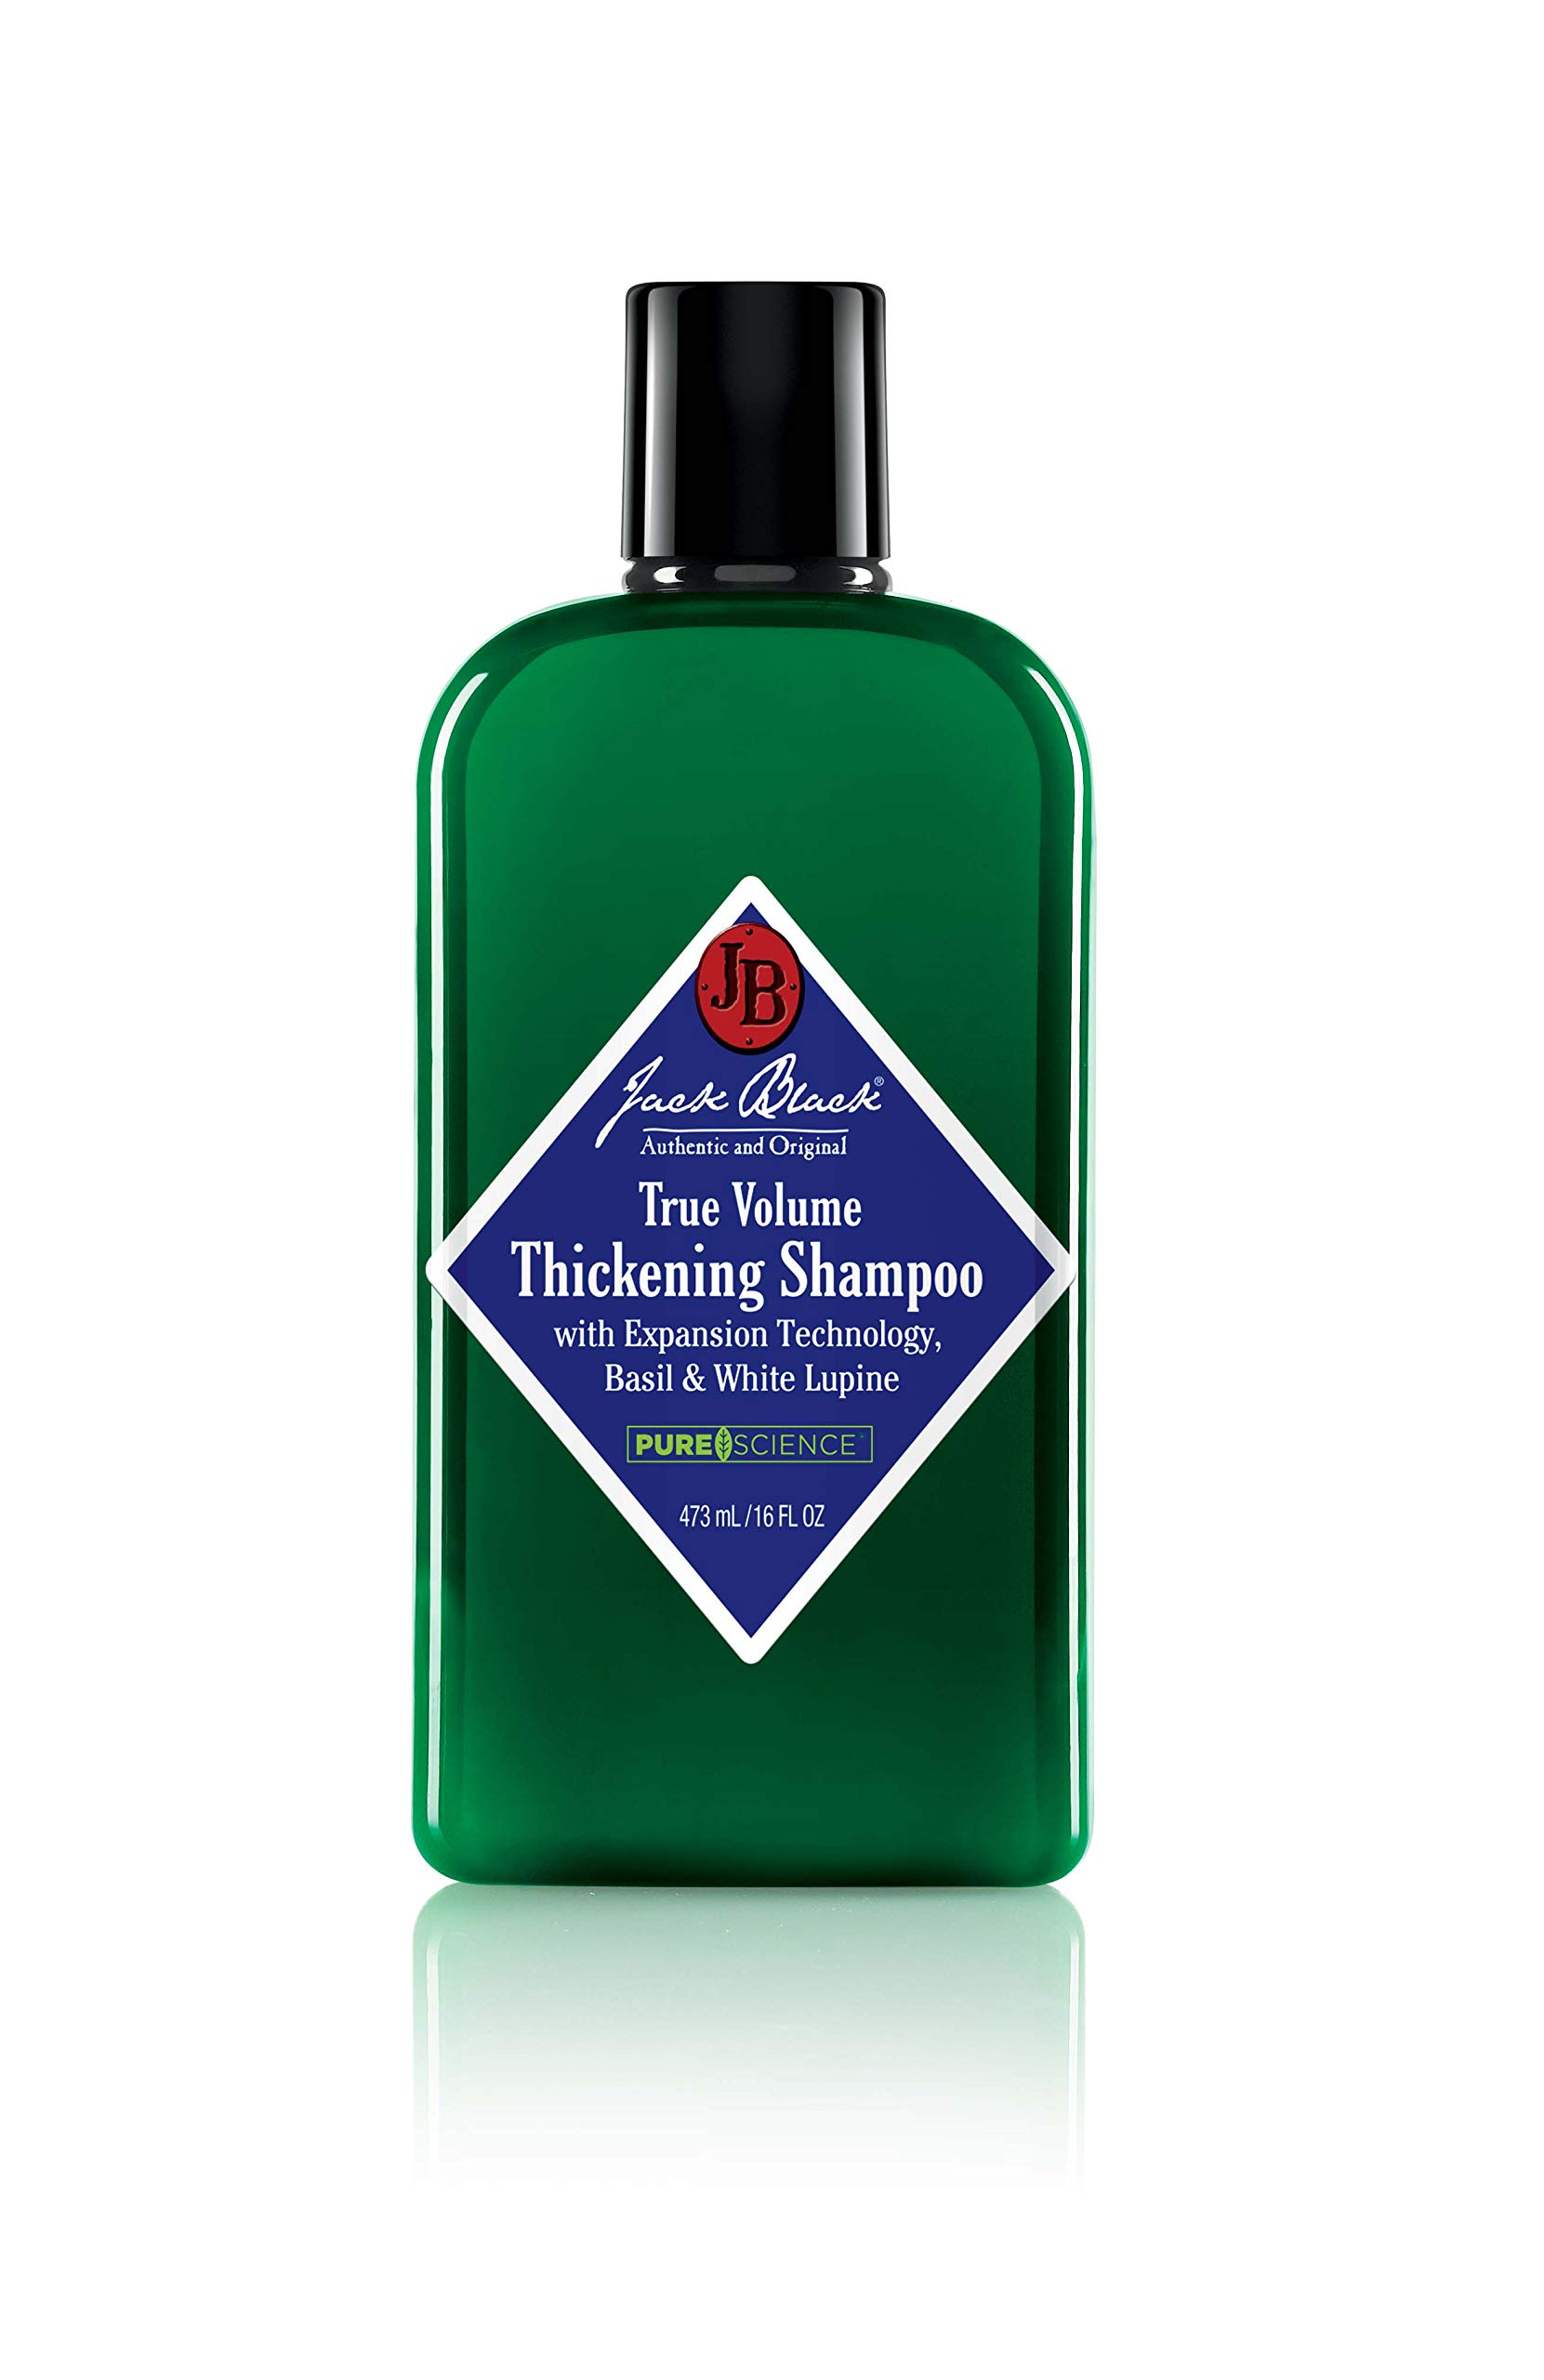 JACK BLACK - True Volume Thickening Shampoo - PureScience Formula, Expansion Technology, Basil & White Lupine, Sulfate-Free Shampoo,and Product Build-Up, Helps Thicken Hair, 16 oz by Jack Black